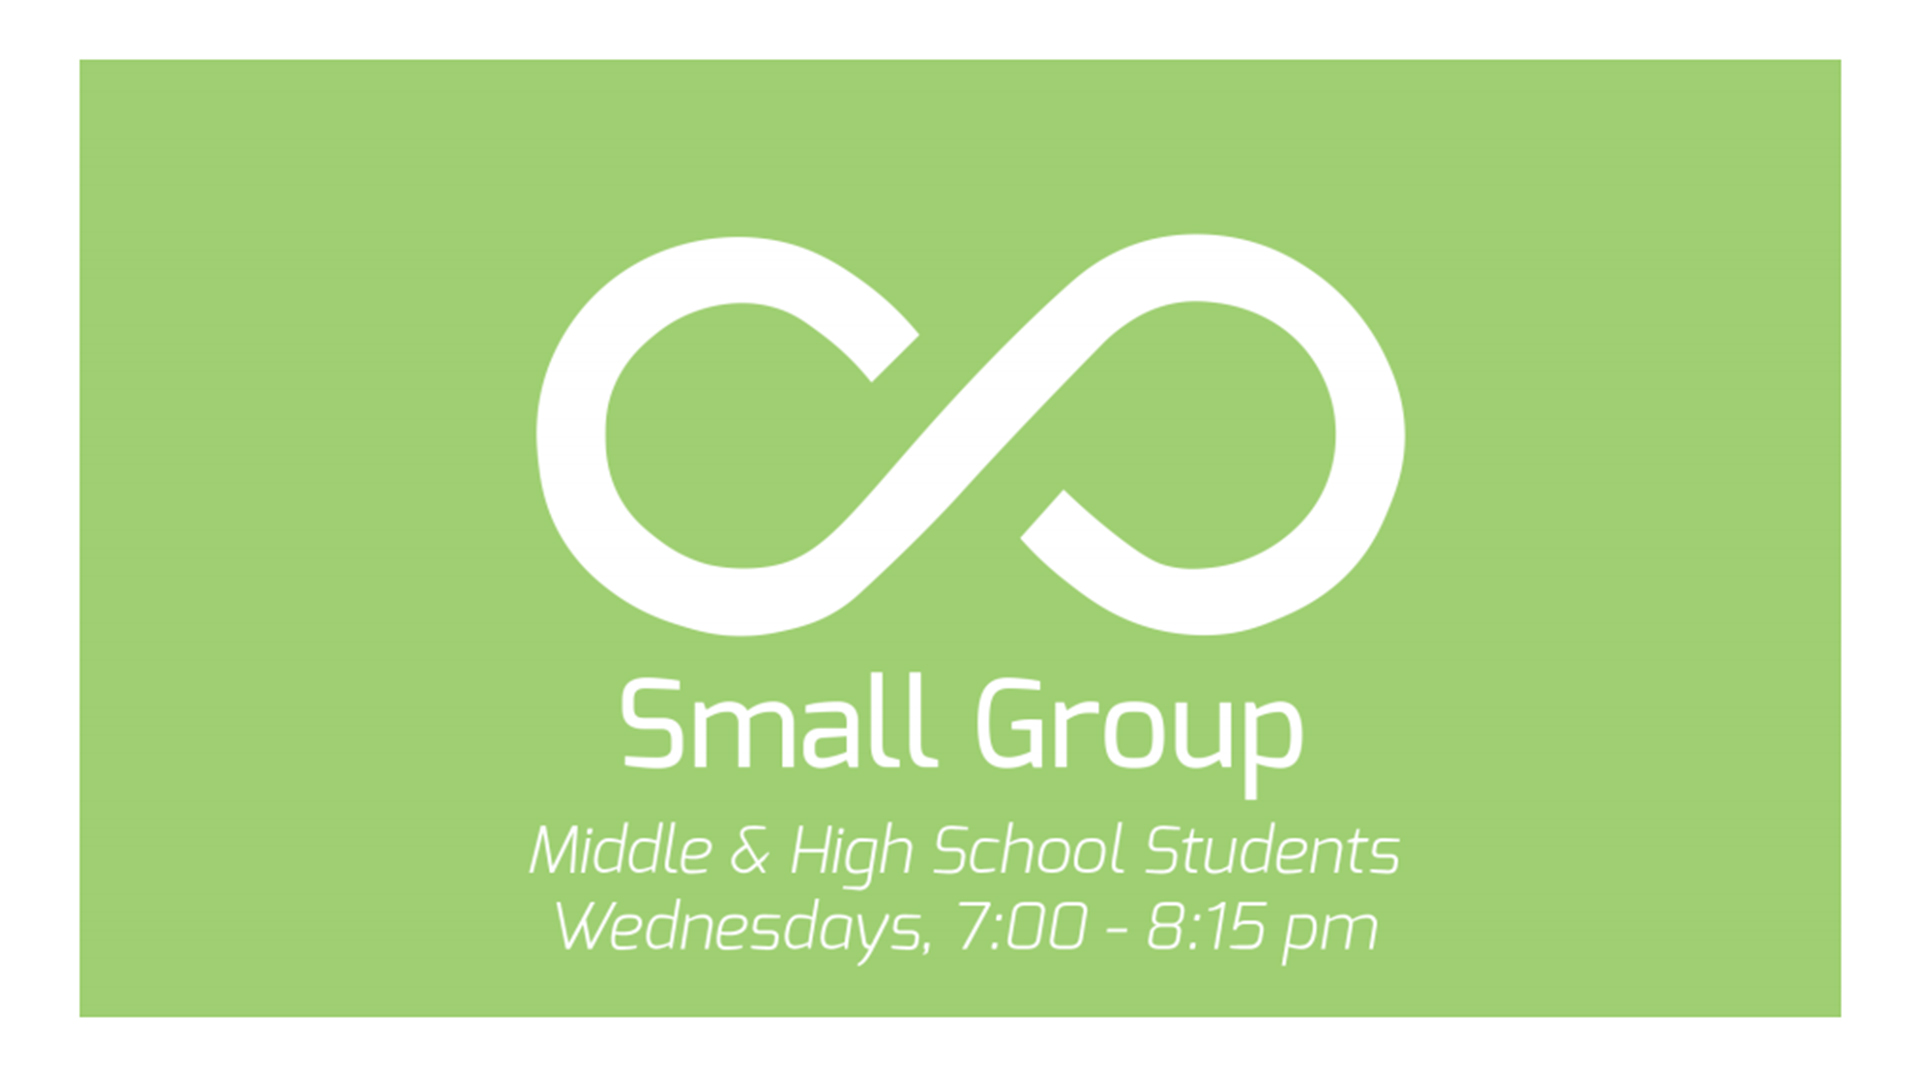 Students_Small Groups_2018.jpg